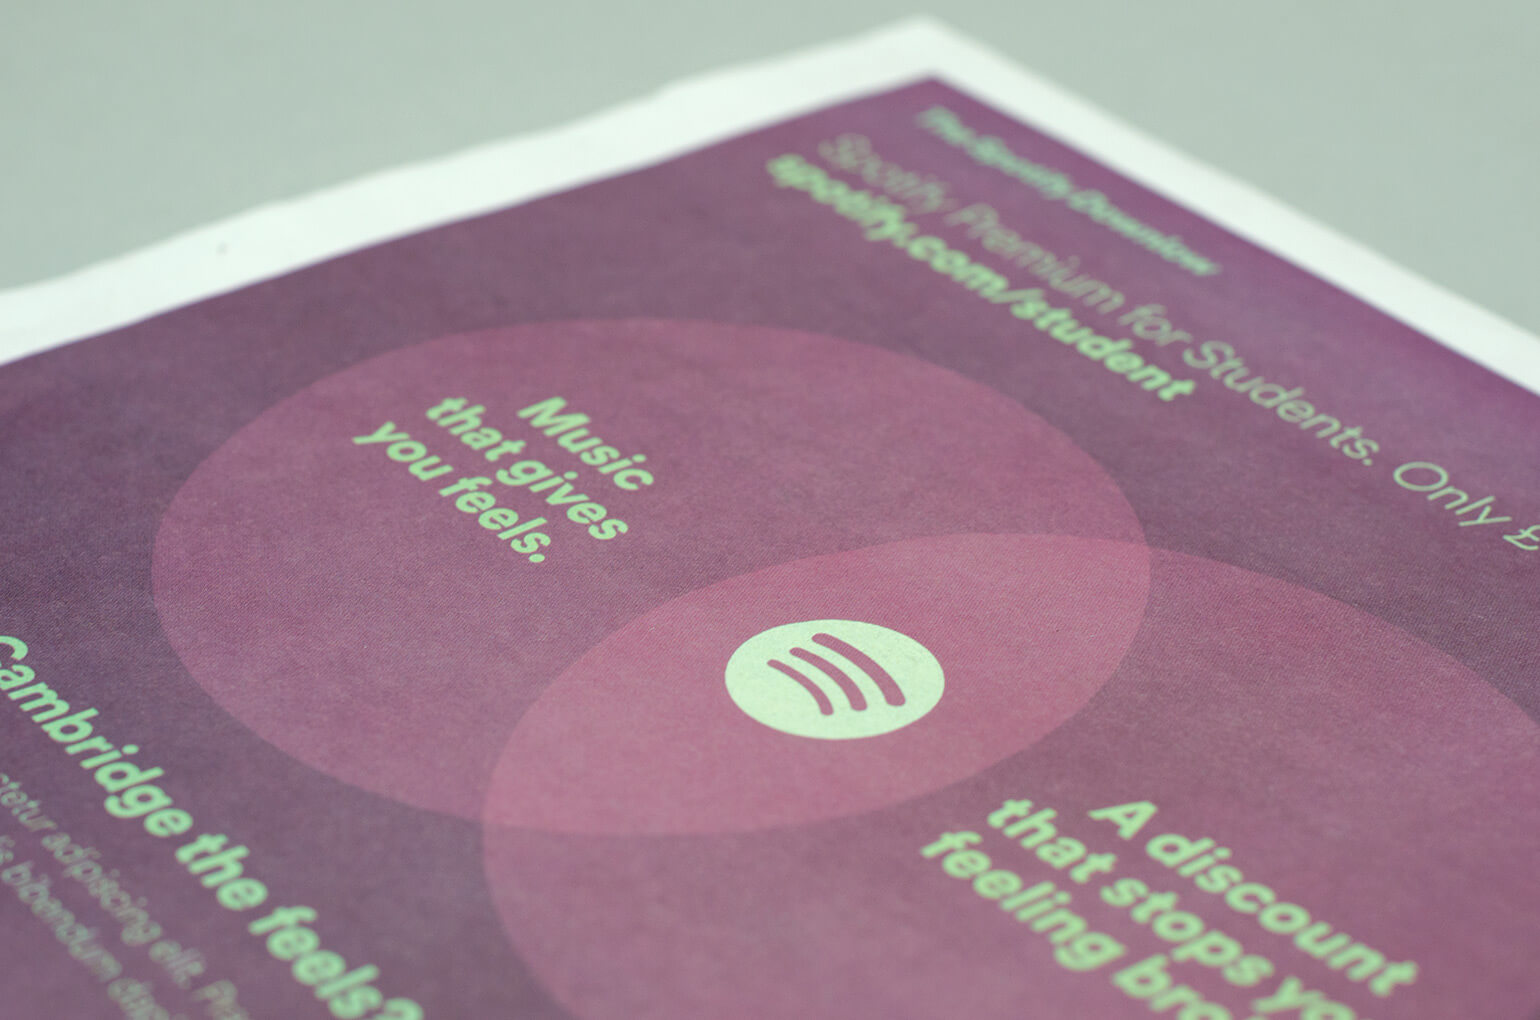 Printed materials from a Spotify campaign